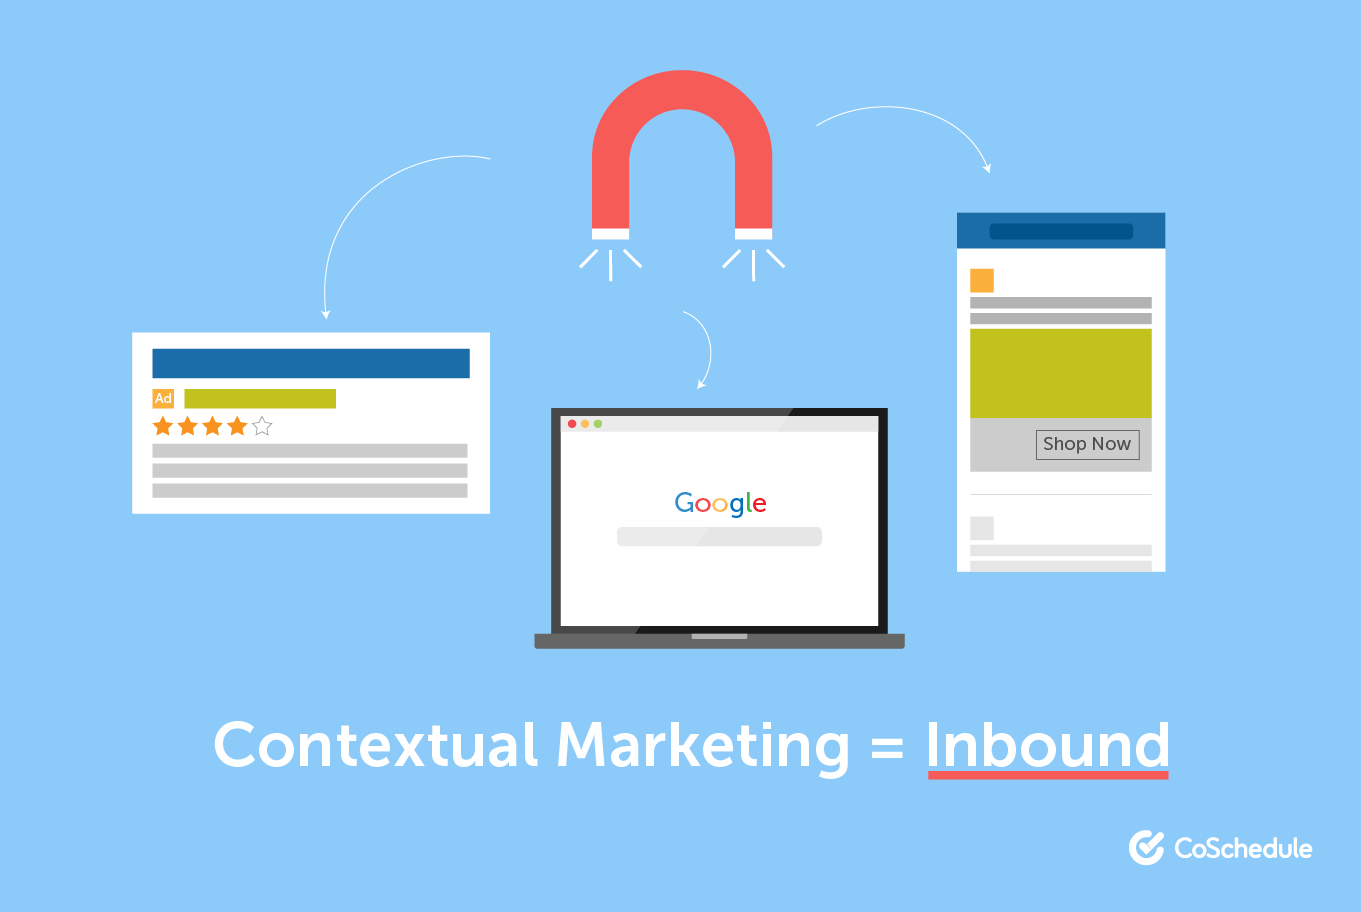 Contextual marketing is the same as inbound marketing